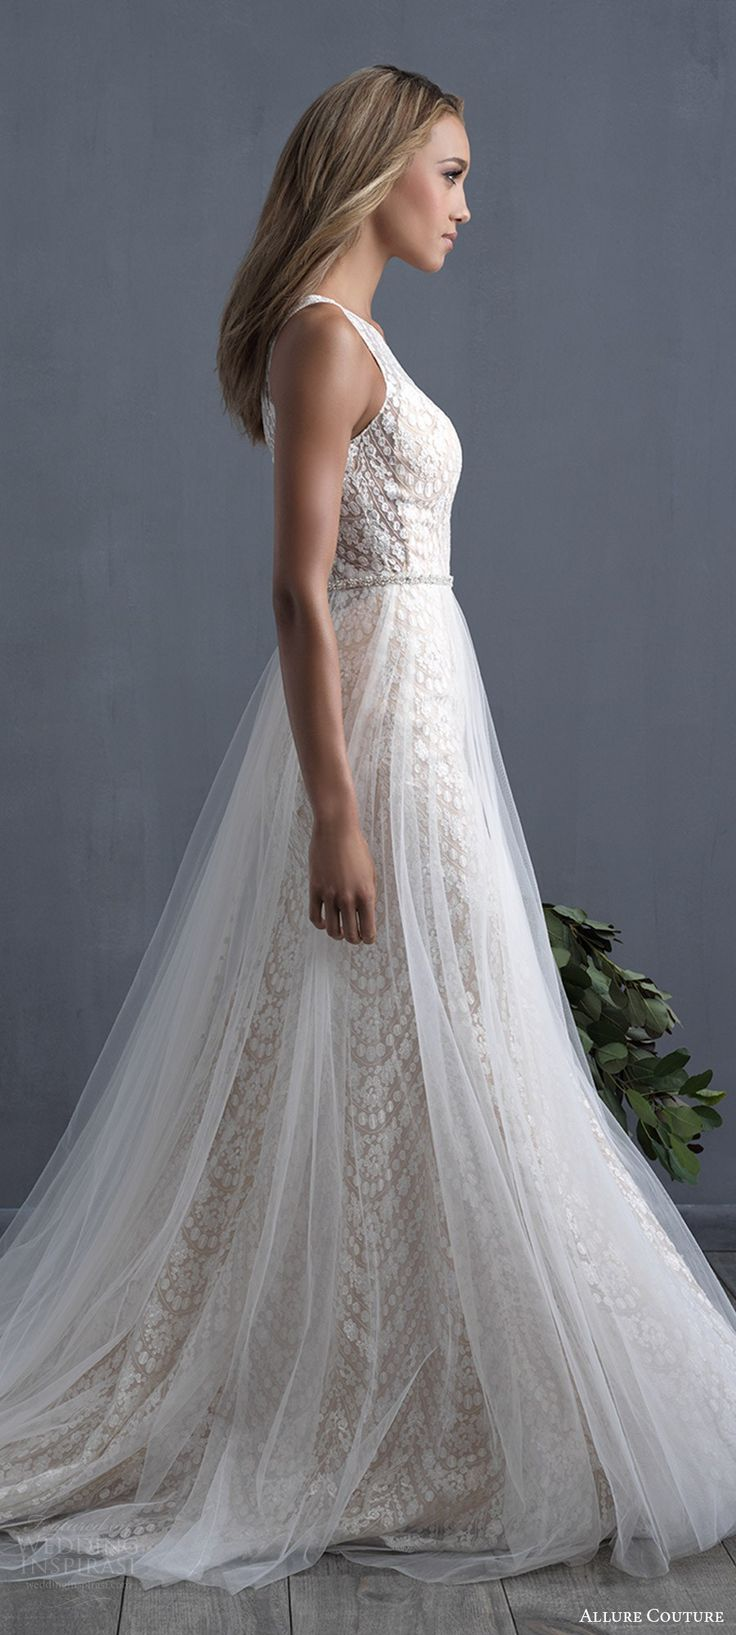 2018 Wedding Dress Trends To Love – Part 1: allure couture 2018 bridal trends sleeveless jewel neck lace a line wedding dress tulle overskirt  #weddingdress; #bridalgown